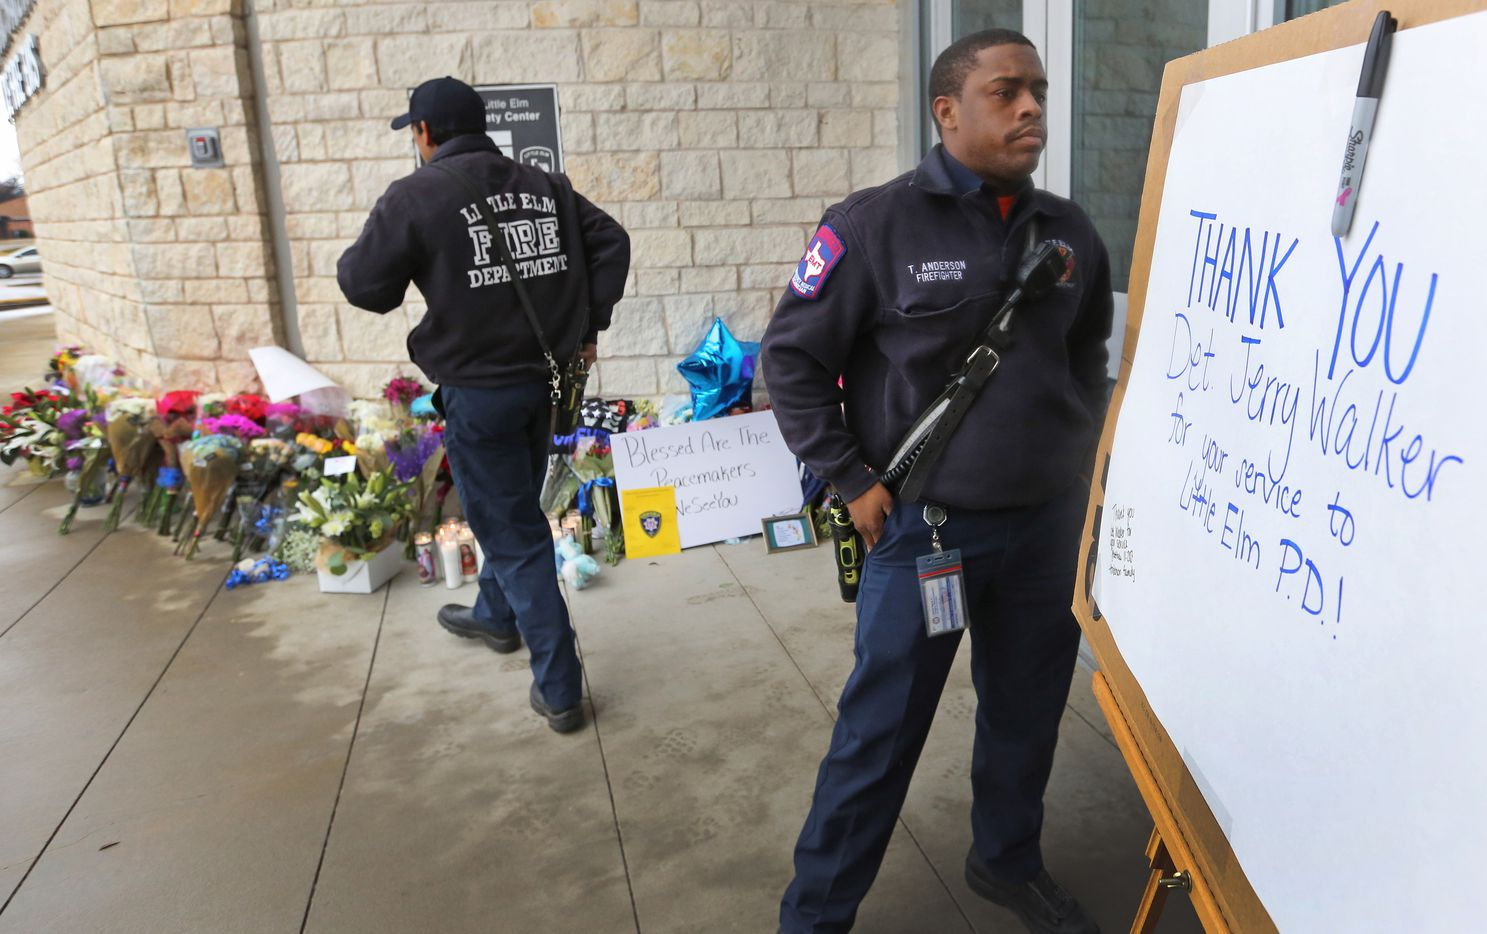 Little Elm firefighters Xavier Alonzo (left) and Terry Anderson help put up a placard to be signed by those visiting the makeshift memorial outside the Little Elm Police Department for Detective Jerry Walker. (Louis DeLuca/Staff Photographer)